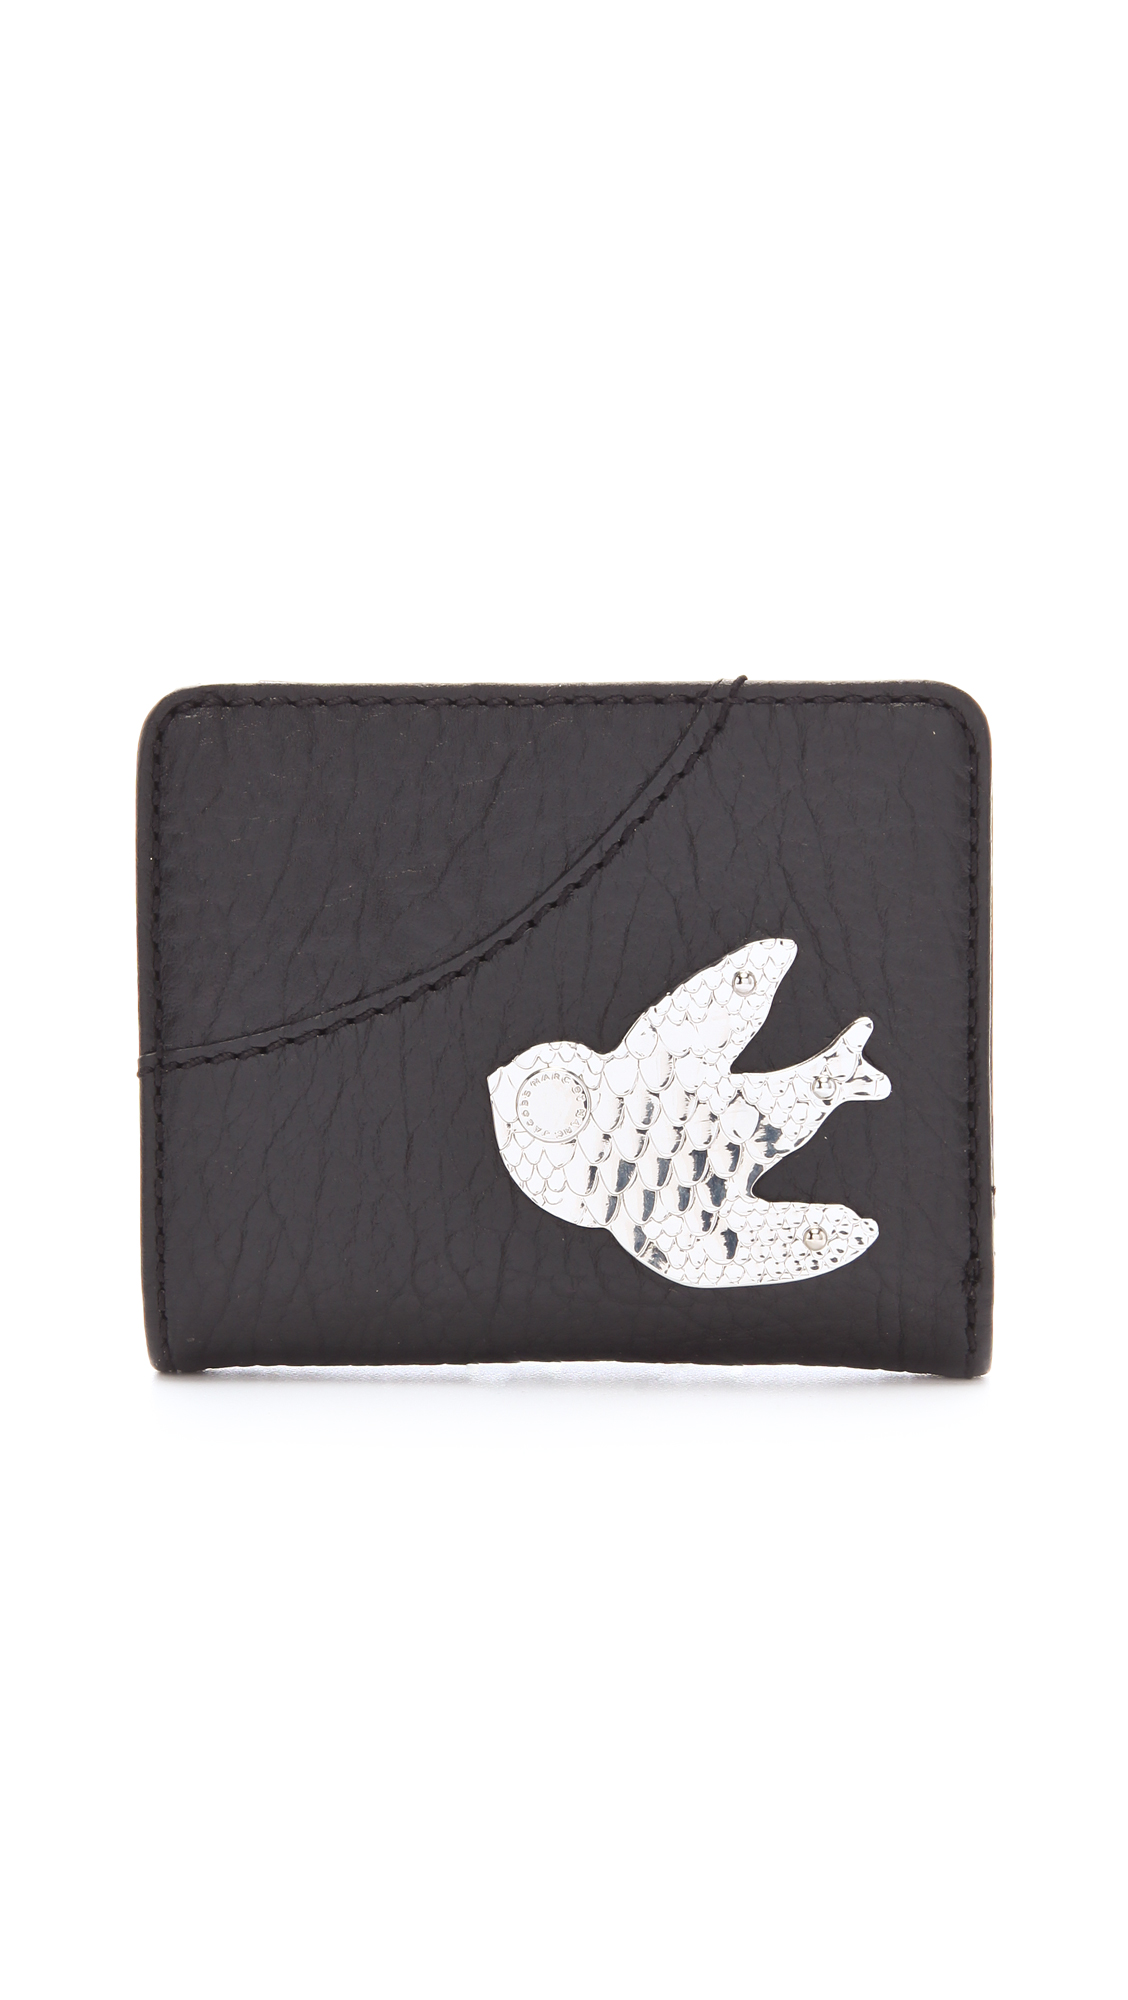 5b0f391c075 Lyst - Marc By Marc Jacobs Petal To The Metal Wallet in Black